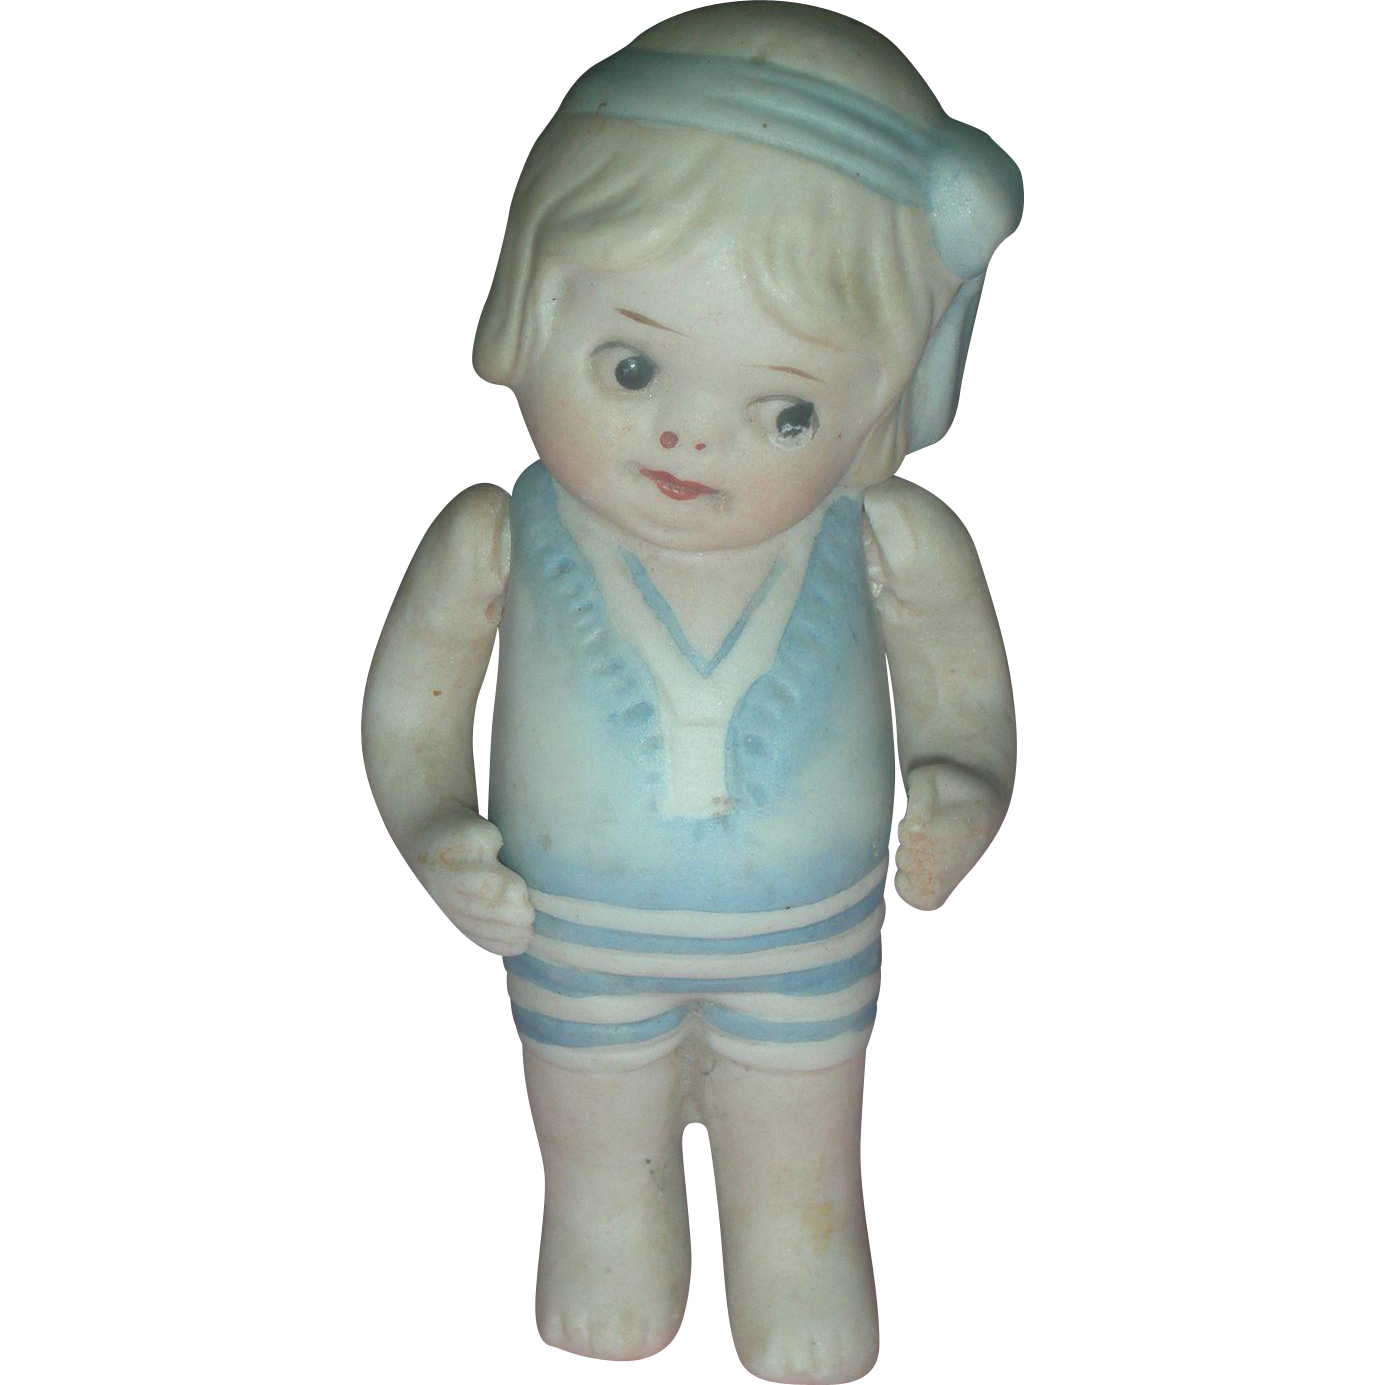 All Bisque Bathing Beauty Doll Side Glancing Eyes Chubby Tummy with Watermelon Smile